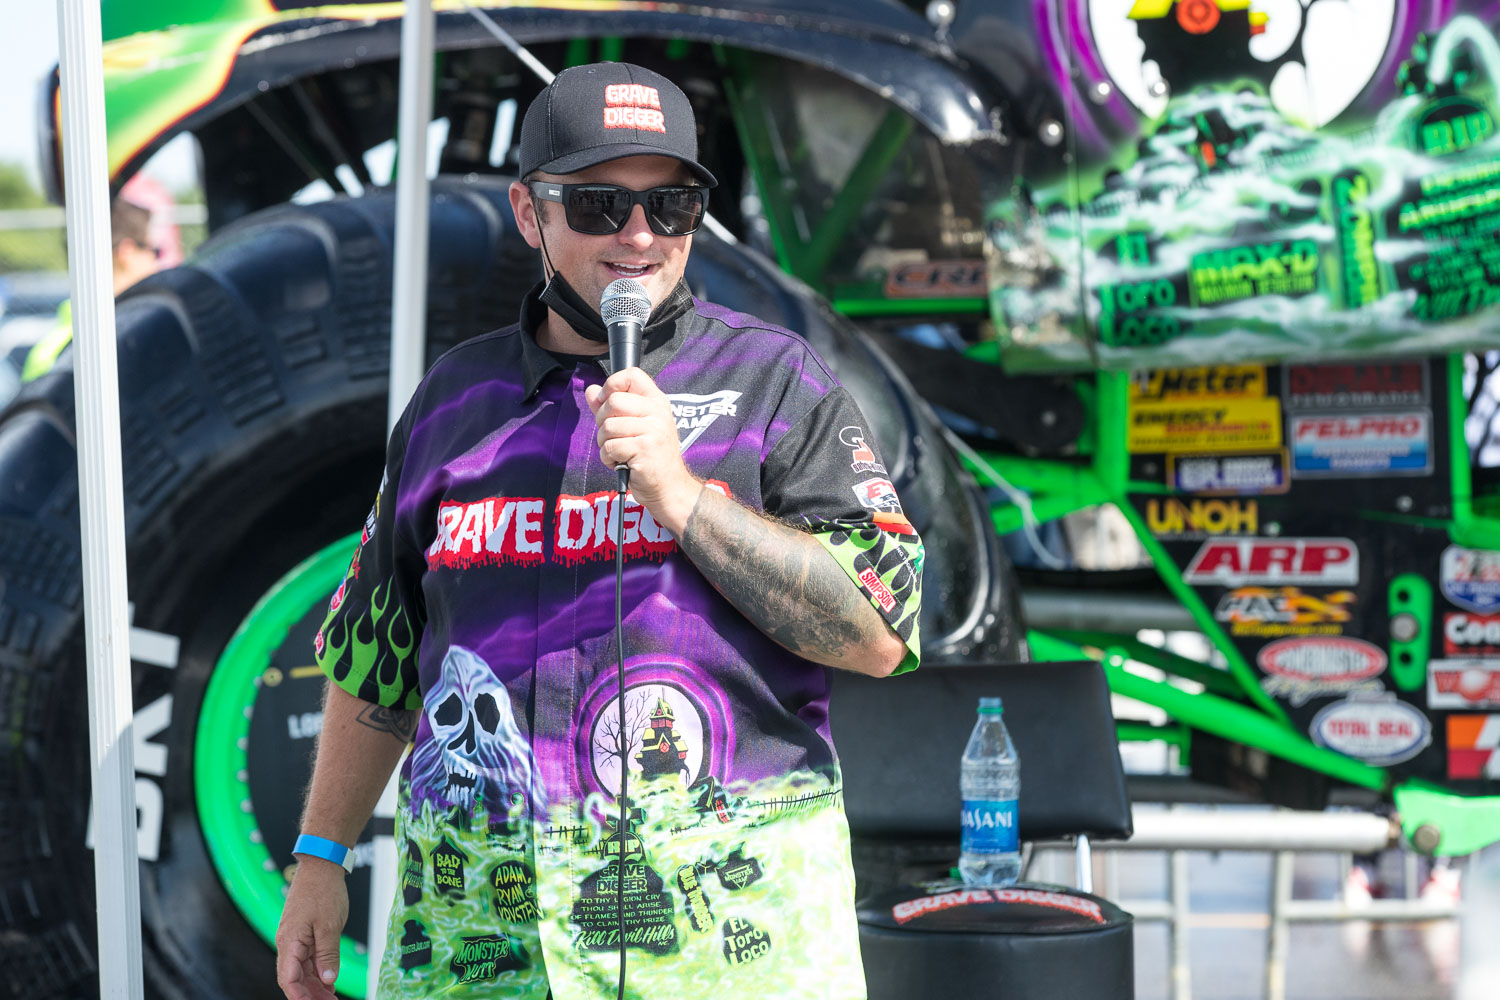 Adam Anderson, driver of the Gravedigger truck participates in a Q&A session during the Monster Jam Pit Party prior to the main event at GEHA Field at Arrowhead on Saturday evening, June 26, 2021.